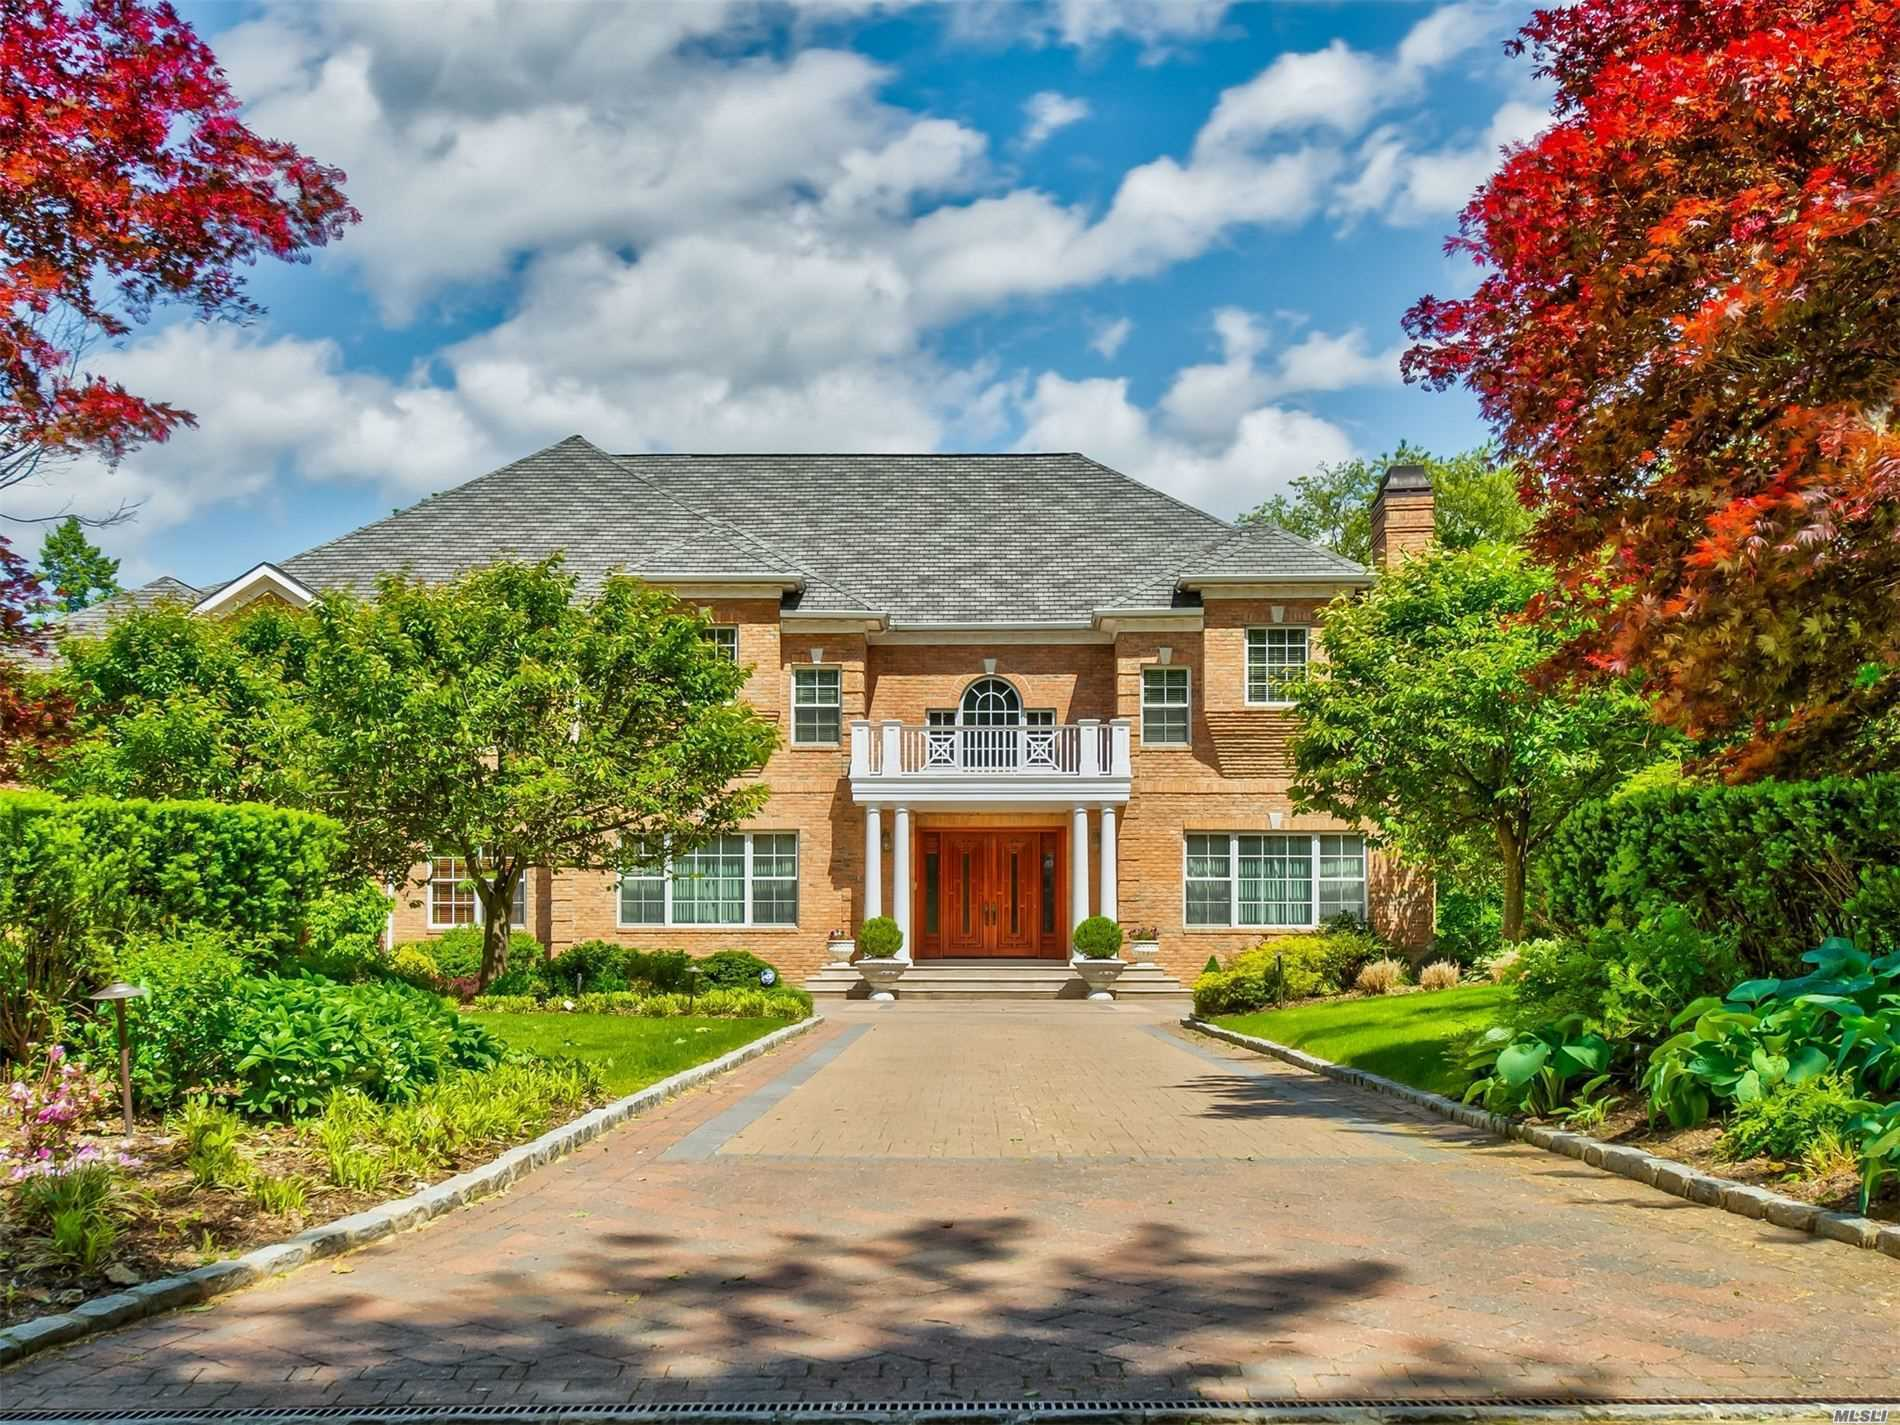 A Long Tree Lined Driveway Introduces This Stunning Custom Brick Georgian Center Hall Colonial, Custom Designed Featuring 16 Generously Proportioned Rooms With Exceptional Custom Mill Work, High Ceilings Throughout, Radiant Heated Floors, Amazing Hugh Chef's Gourmet Eat In Kitchen All Viking Appliances, Sub Zero Refrigerator, Adjoining Service Kitchen Great For Entertaining, Expansive Brick Patio With Gas Built in Kitchen, Bucolic Retreat That Inspires Serenity Amidst, 2+ Acres Of Lush Lawns.